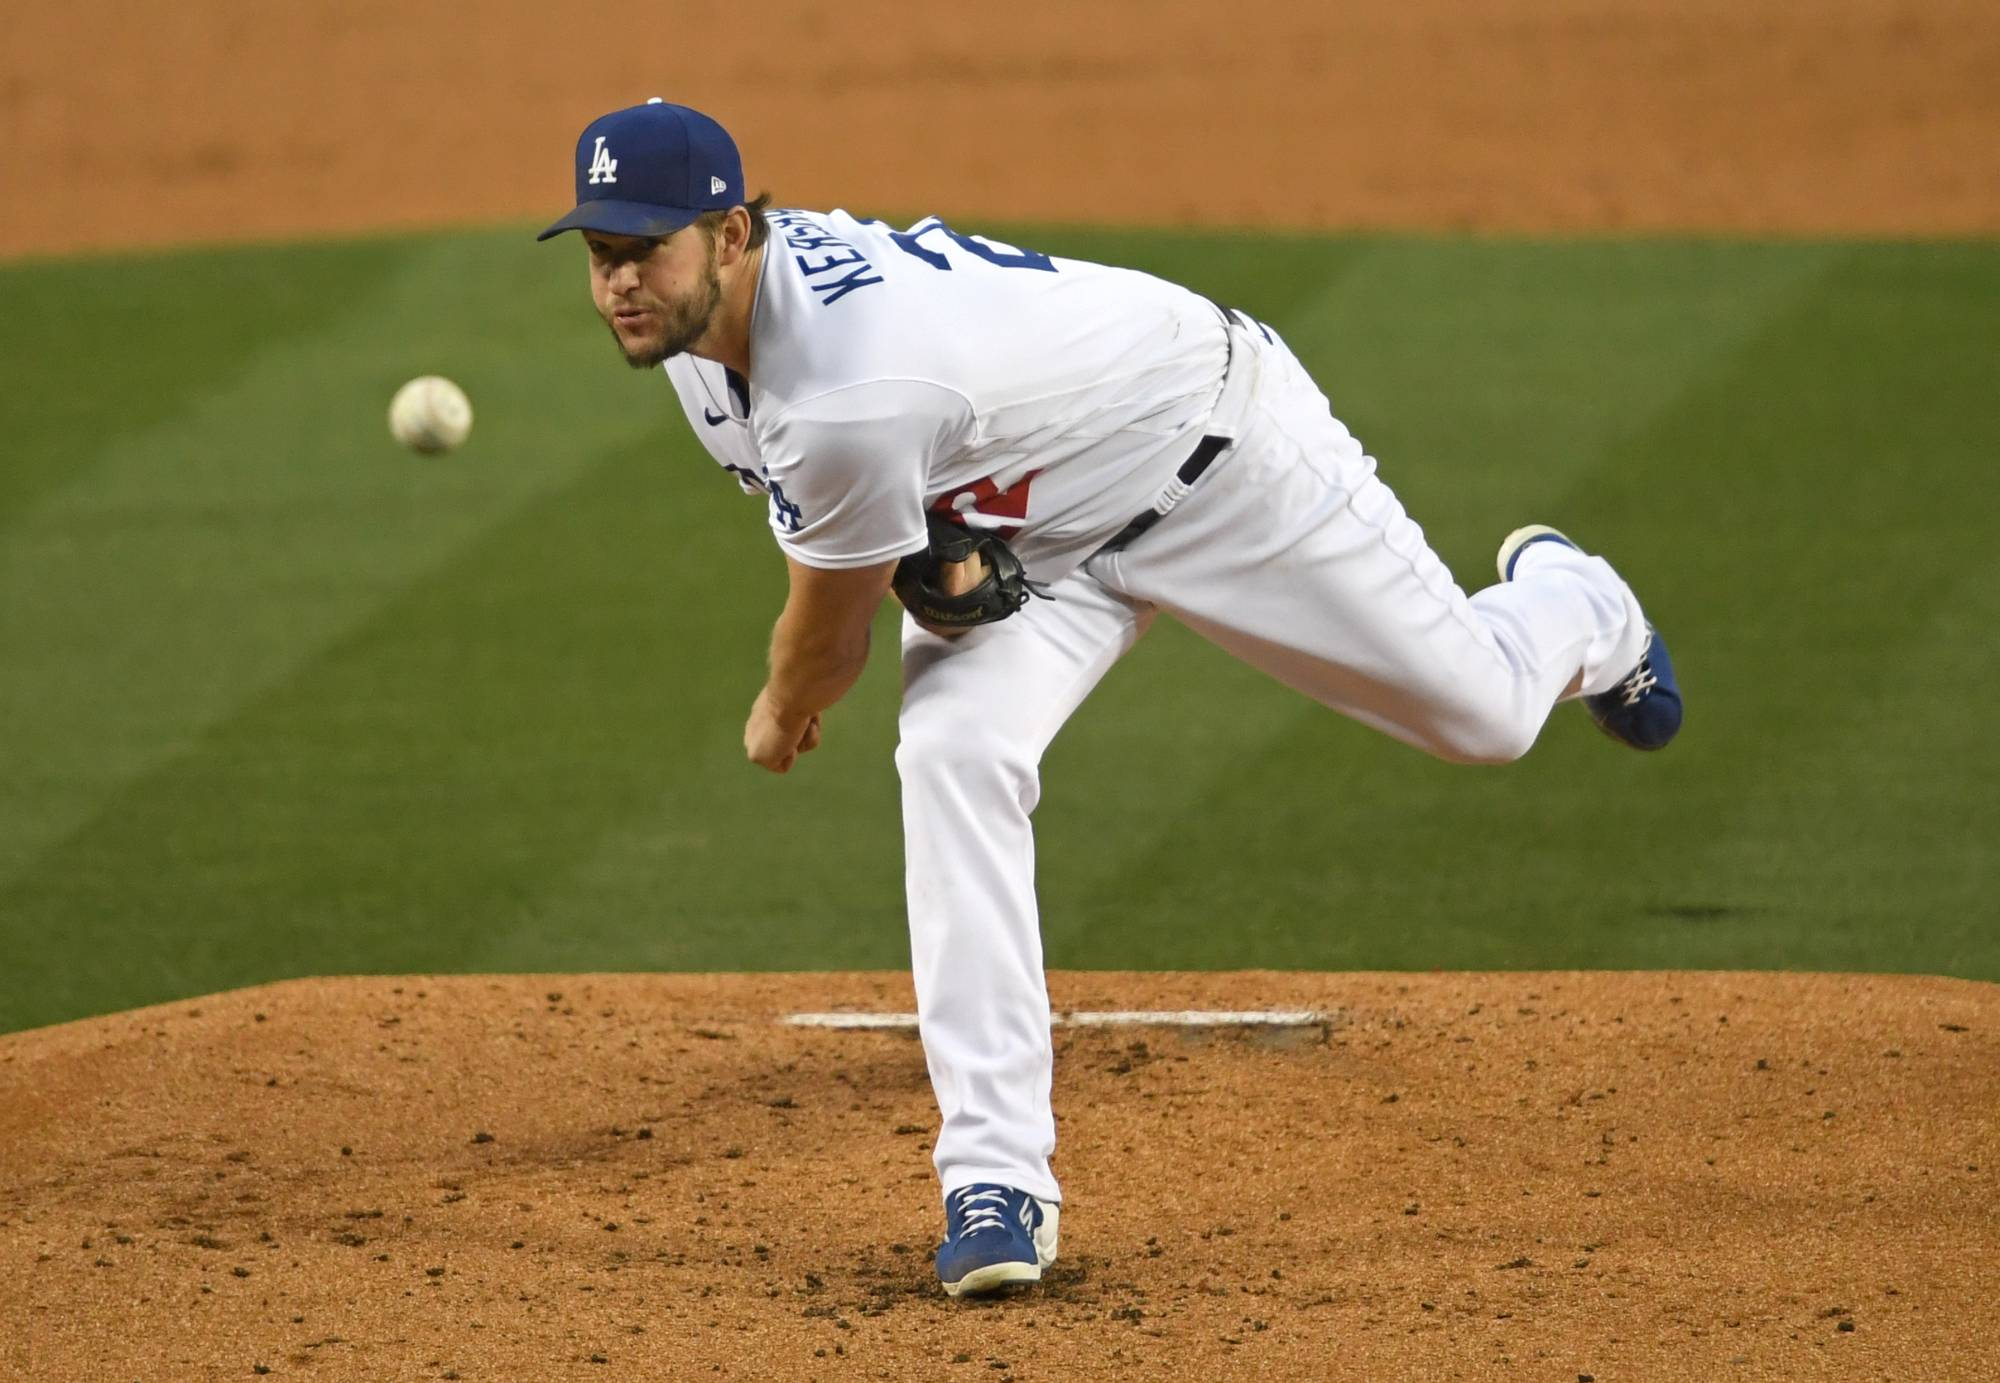 Dodgers pitcher Clayton Kershaw does not think the increase in no-hitters in MLB is good for the game. | USA TODAY / VIA REUTERS